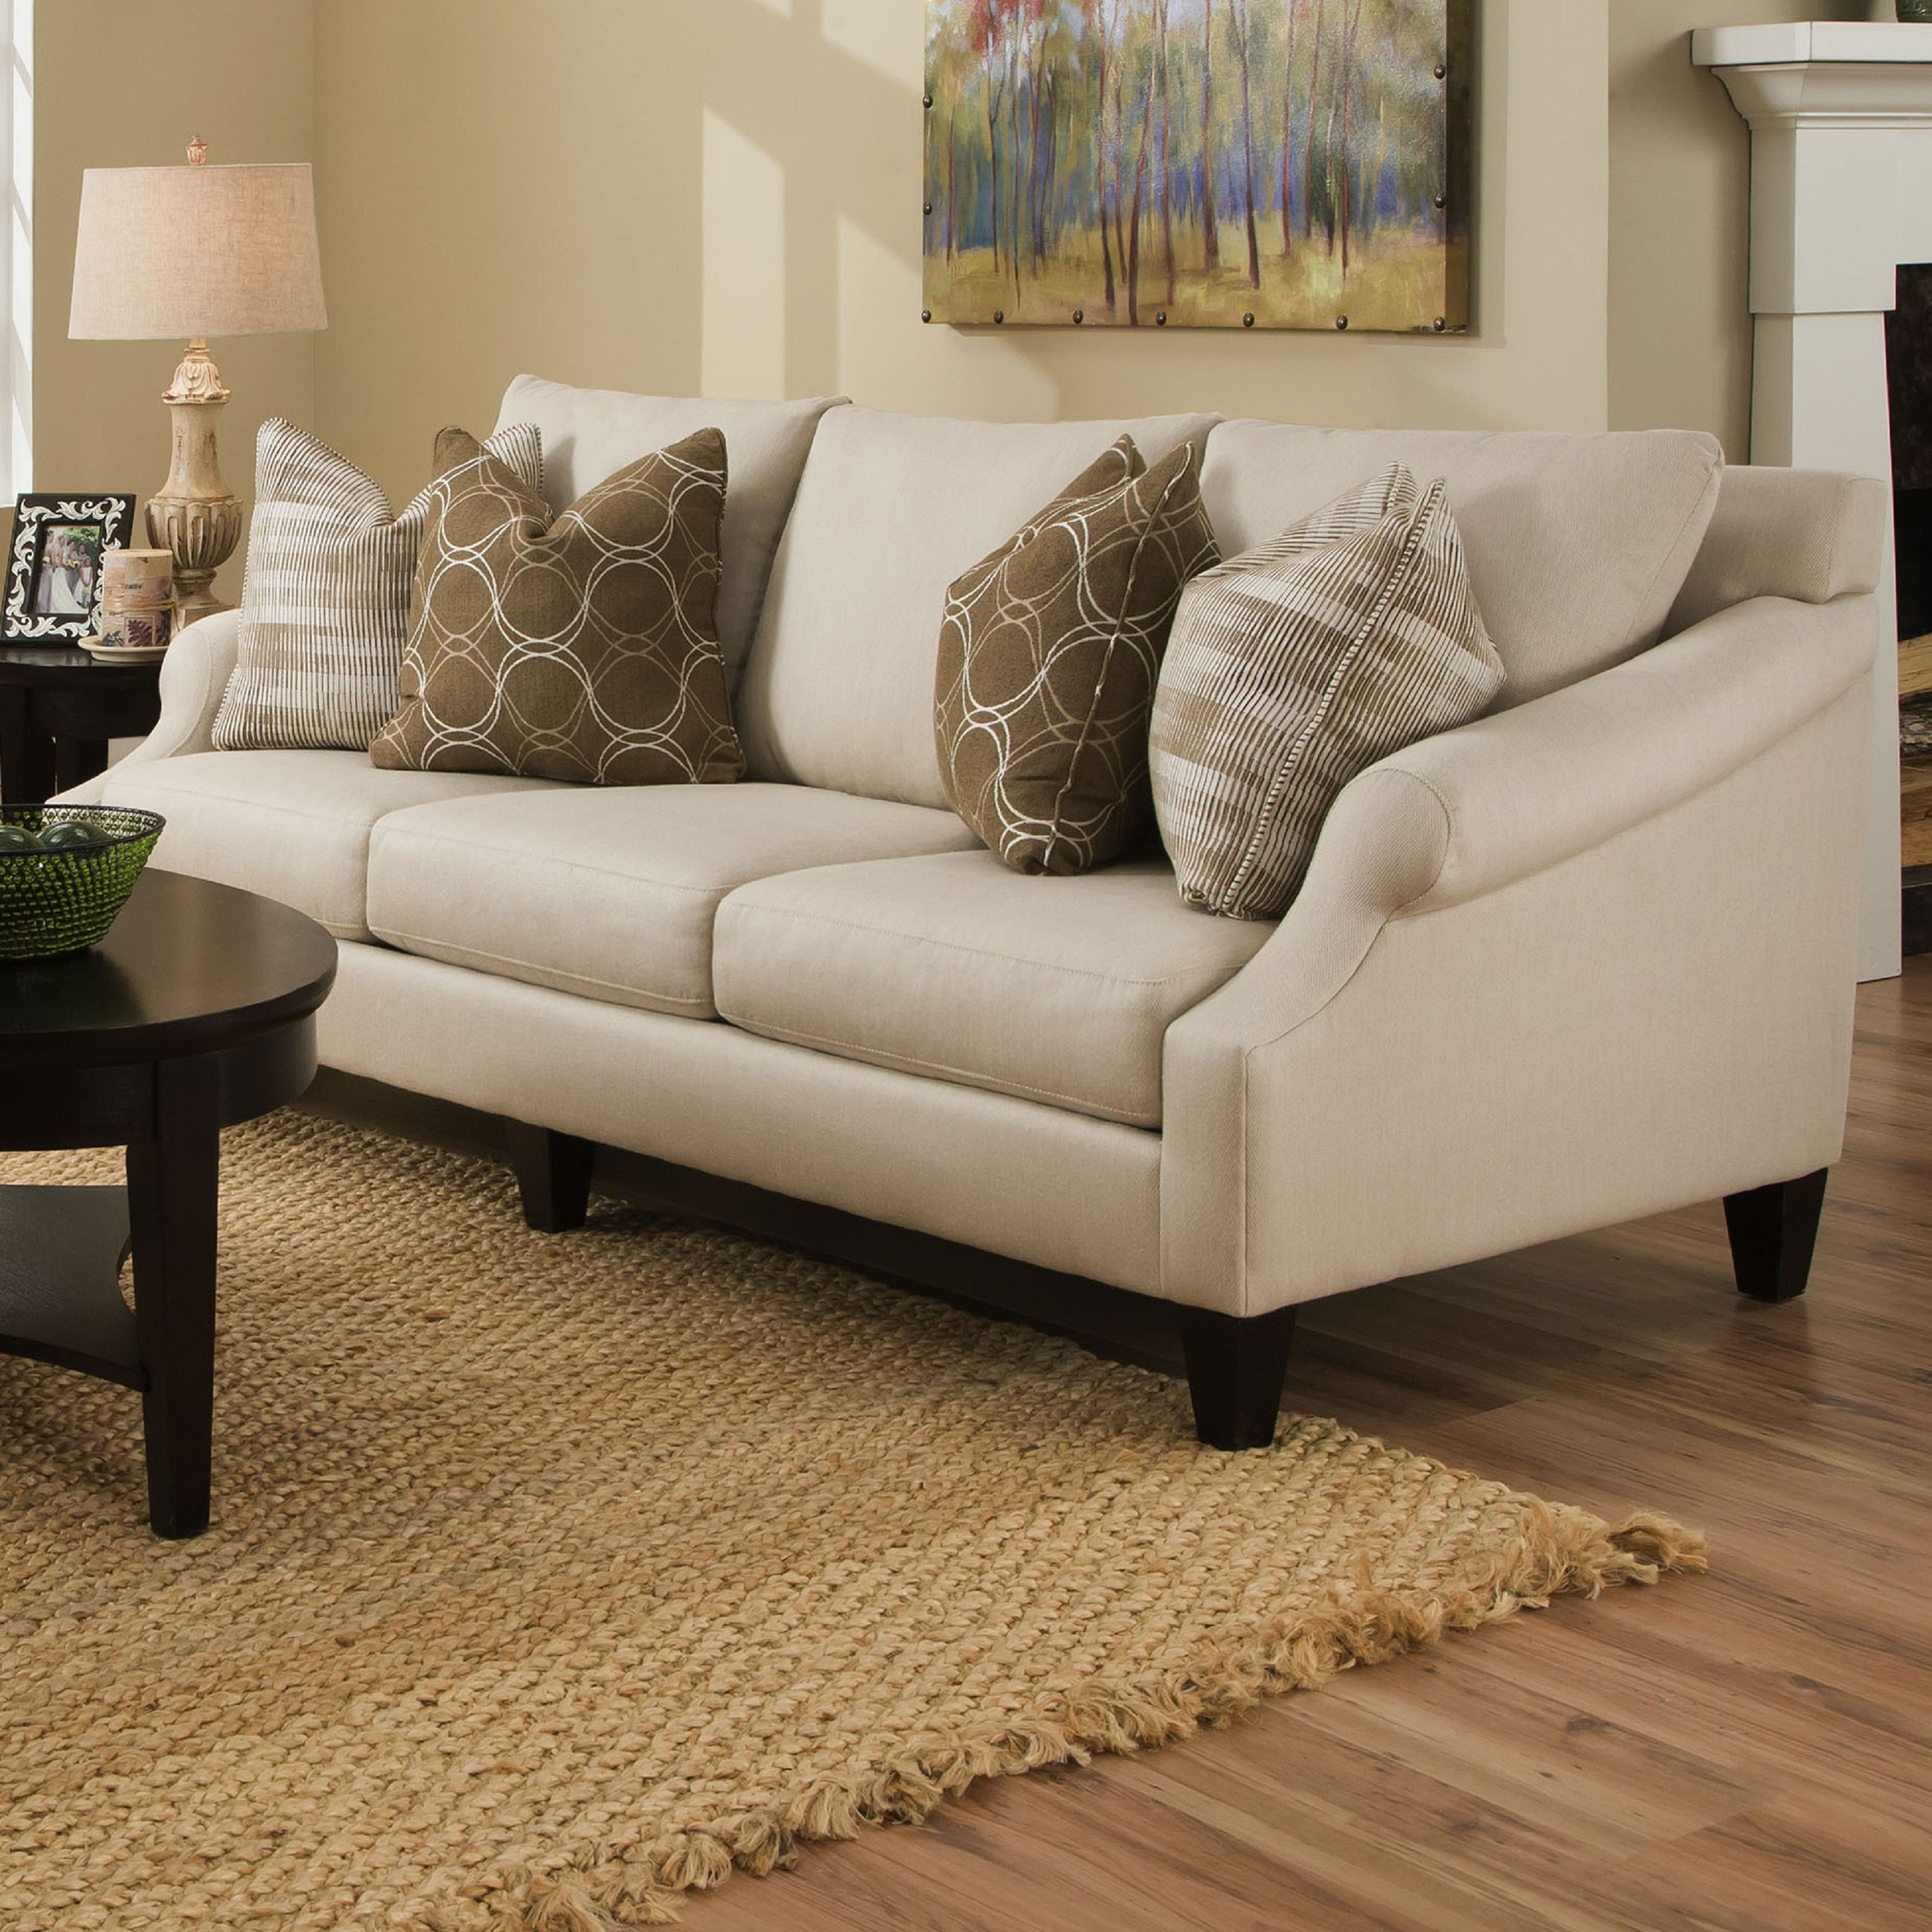 Nice Extra Long Sofa Elegant 98 For Your Modern Inspiration With Http Sofascouch 3 16207